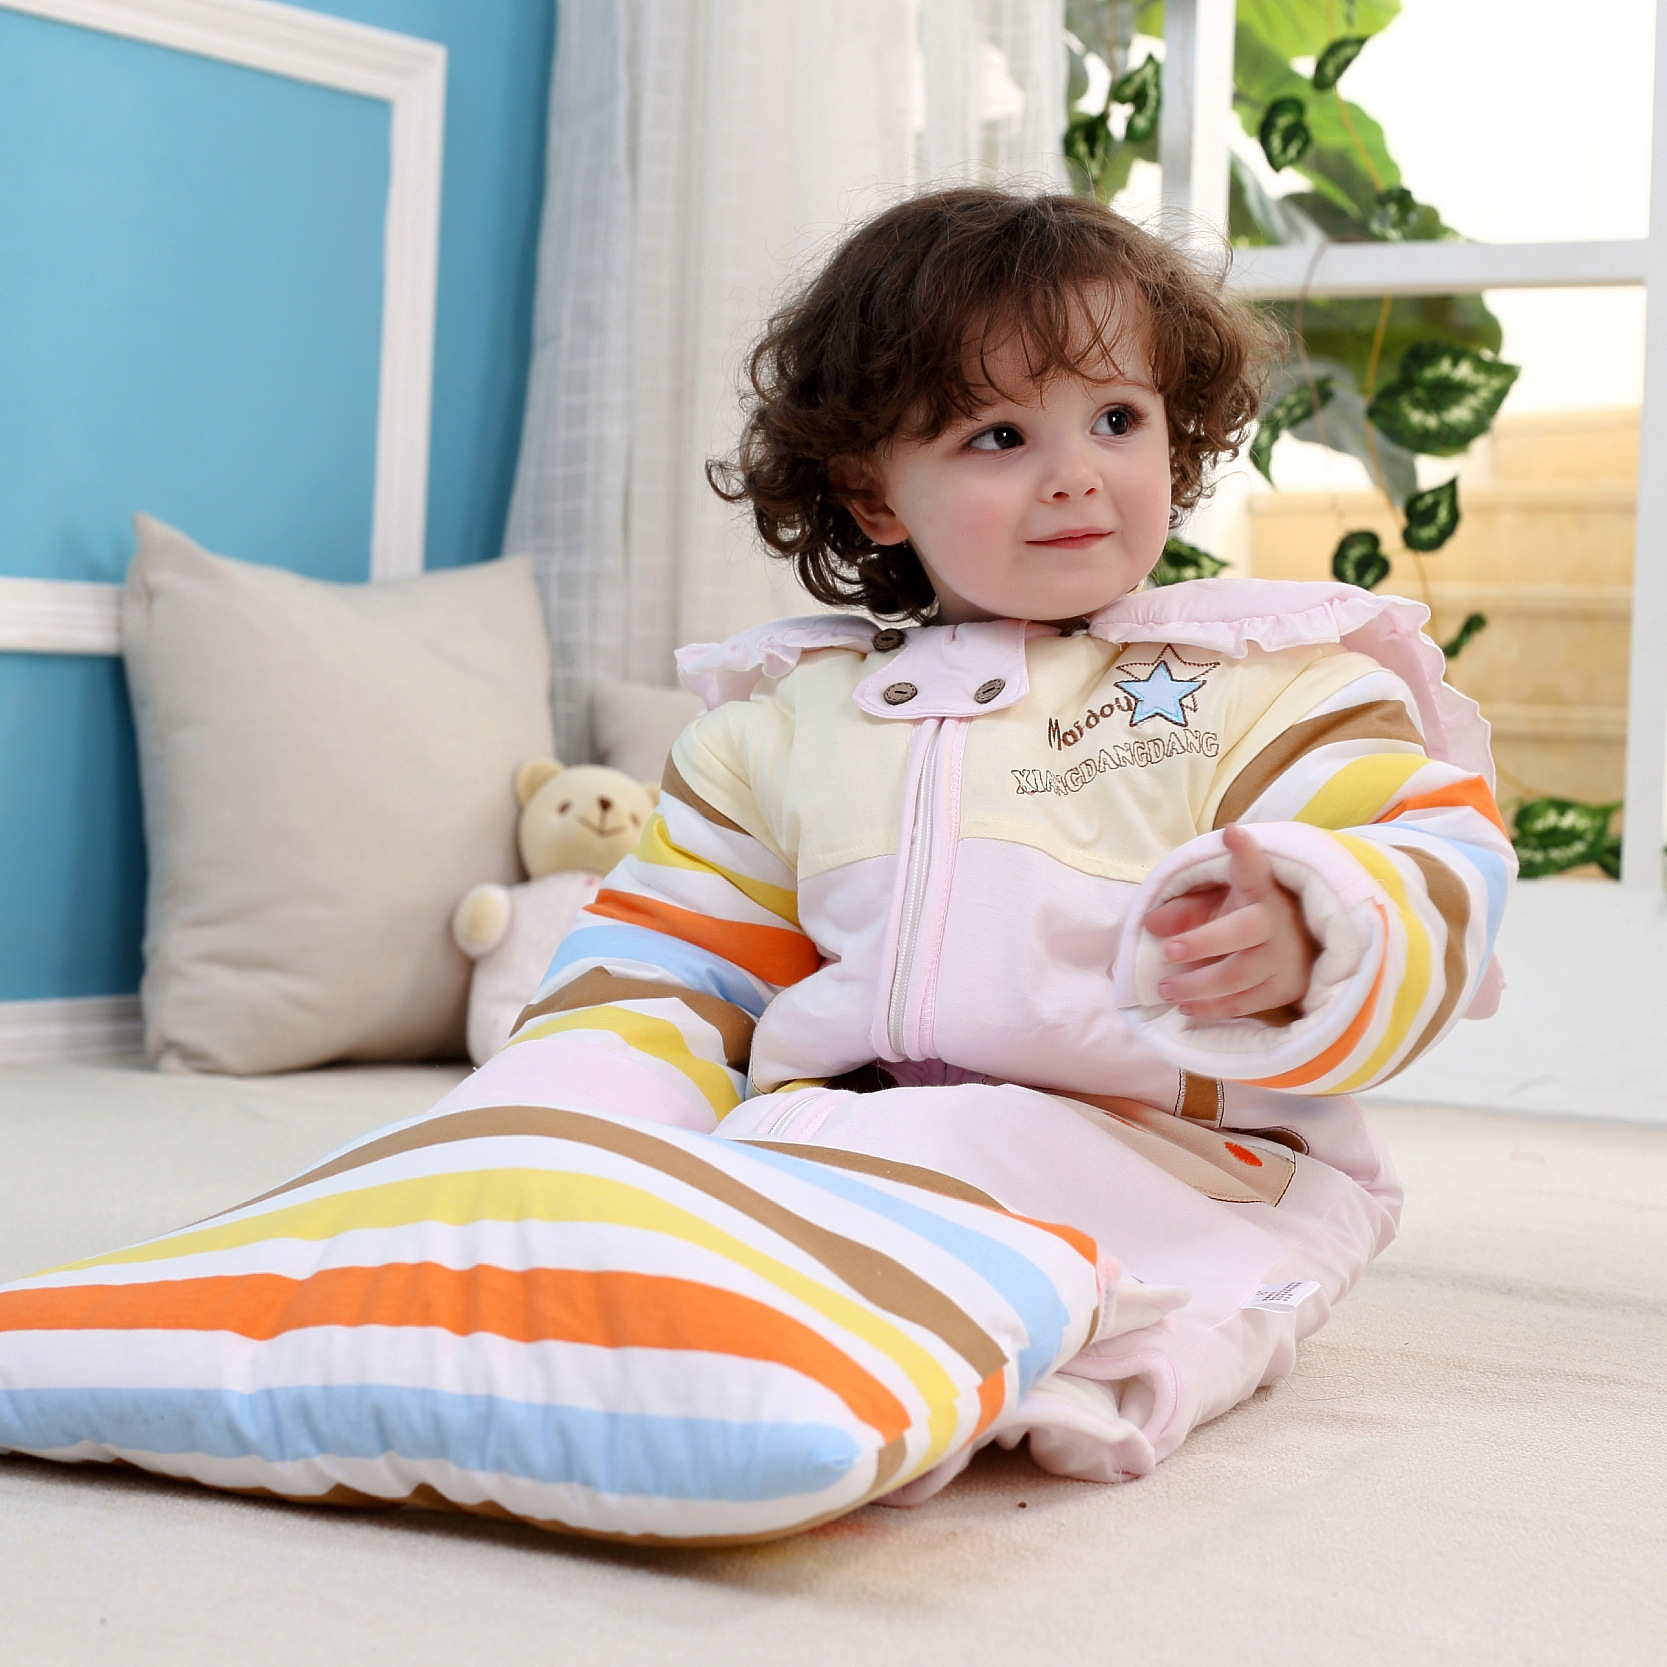 2016 New Baby Sleeping Bag Autumn Winter Cotton Thickened Detachable Sleeve Newborn Infant Sleeping Sack Anti Kick Baby Bags new baby sleeping bag soft cotton autumn child sleep suit u collar baby sleepsacks dogs clothes autumn winter